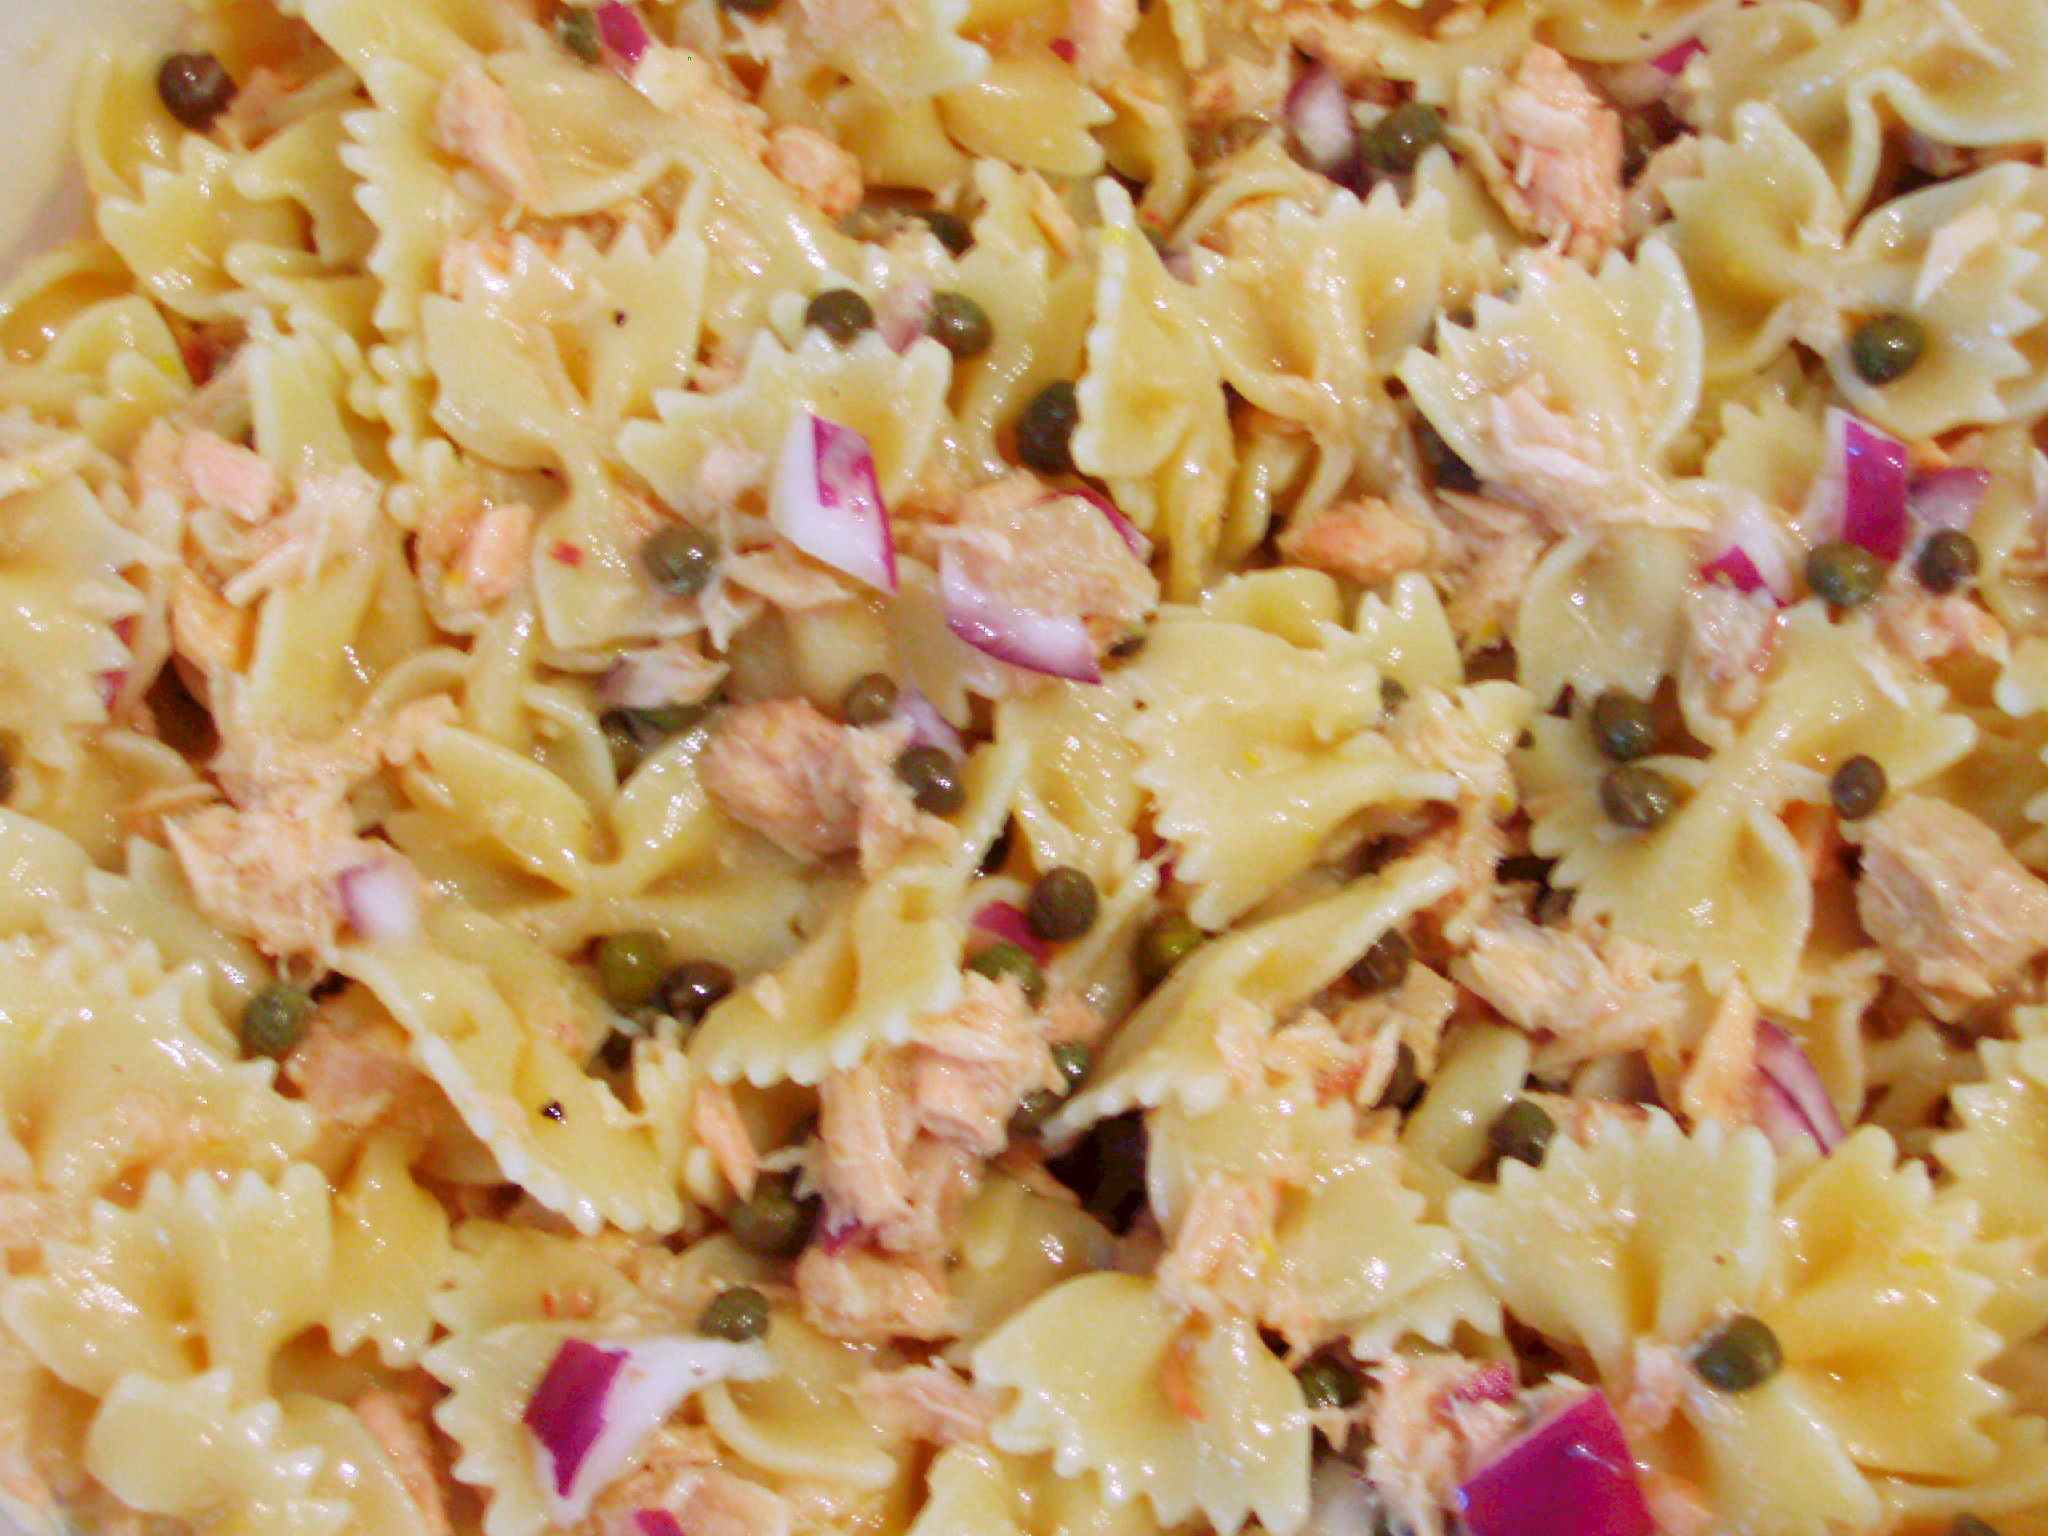 Pasta Salad with Tuna, Capers